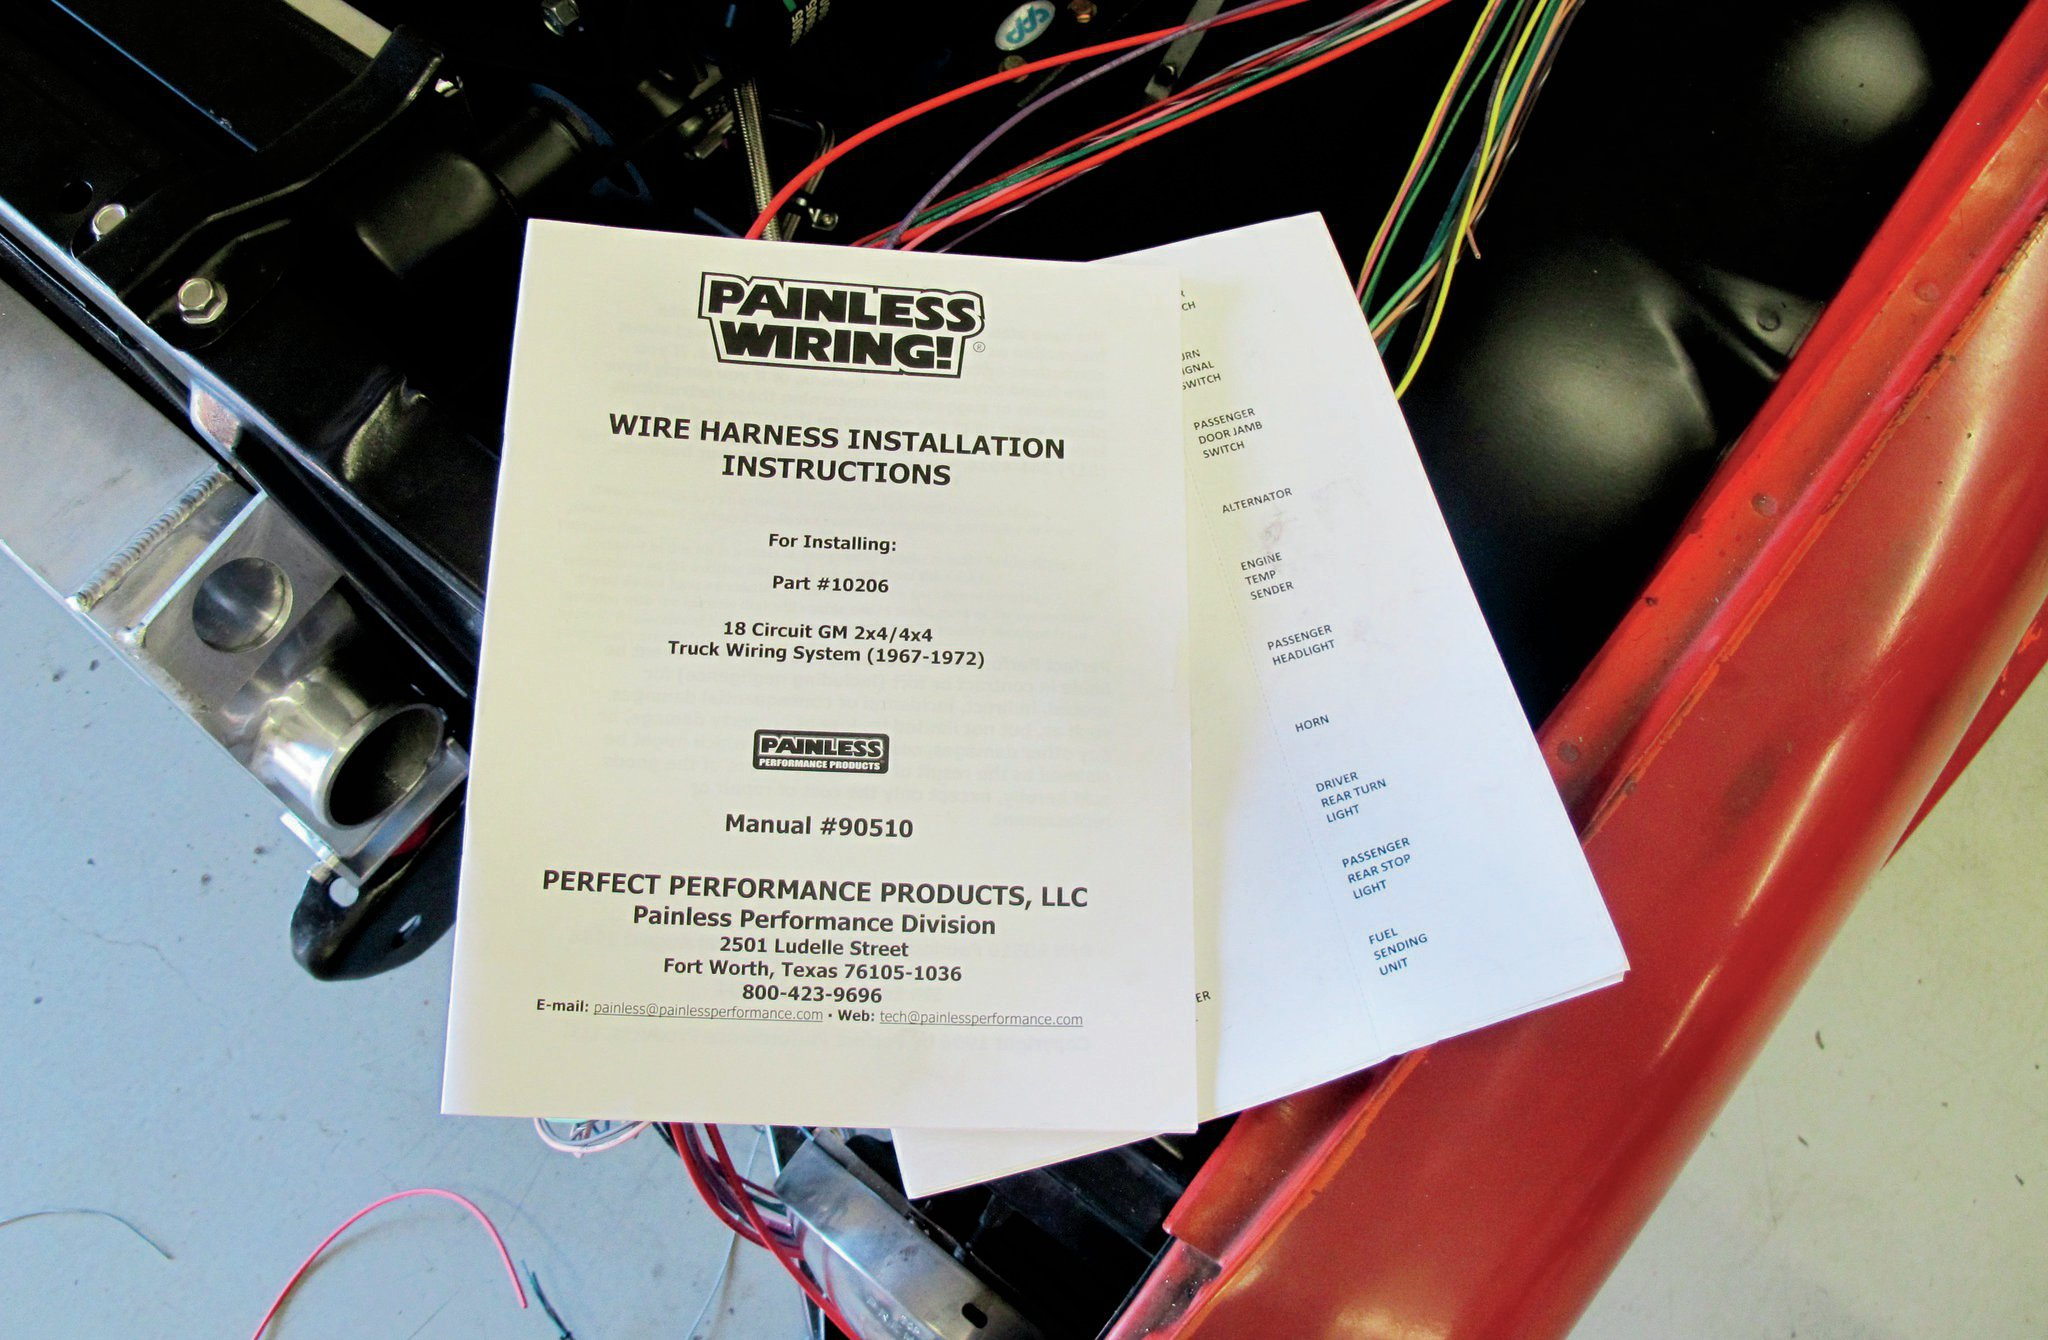 Painless Wiring Instructions